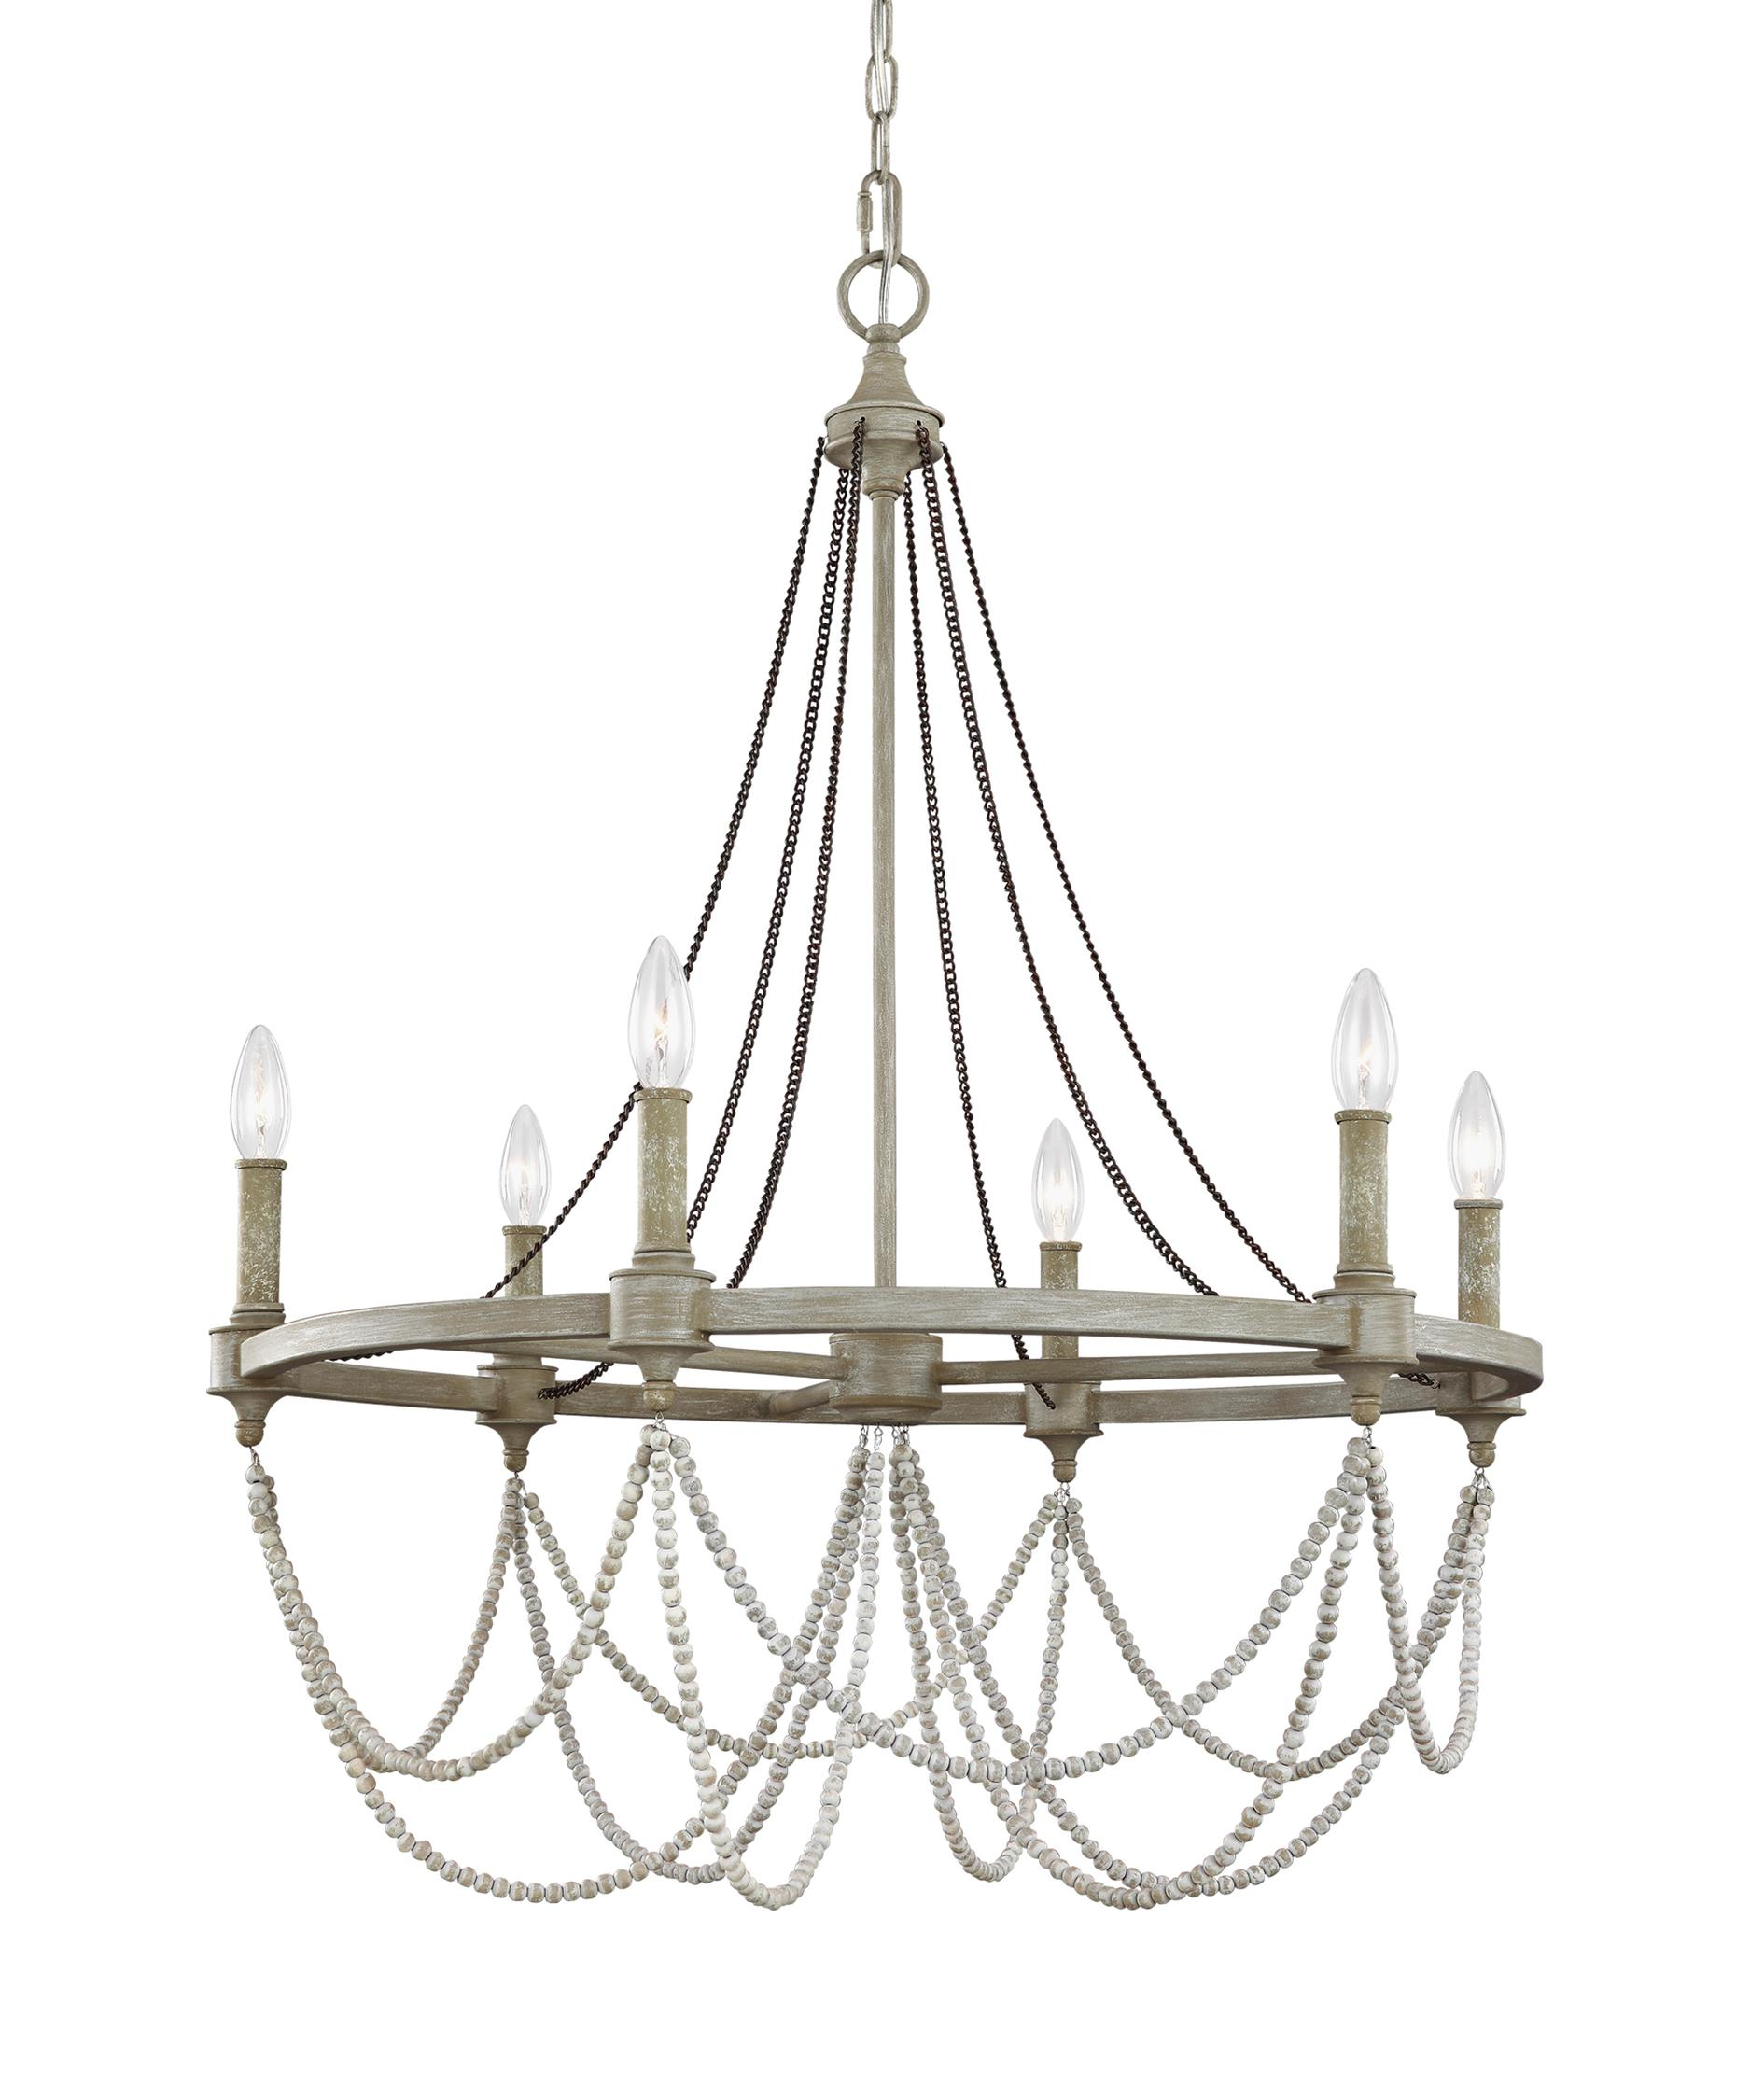 shown in french washed oak distressed white wood finish - Feiss Lighting